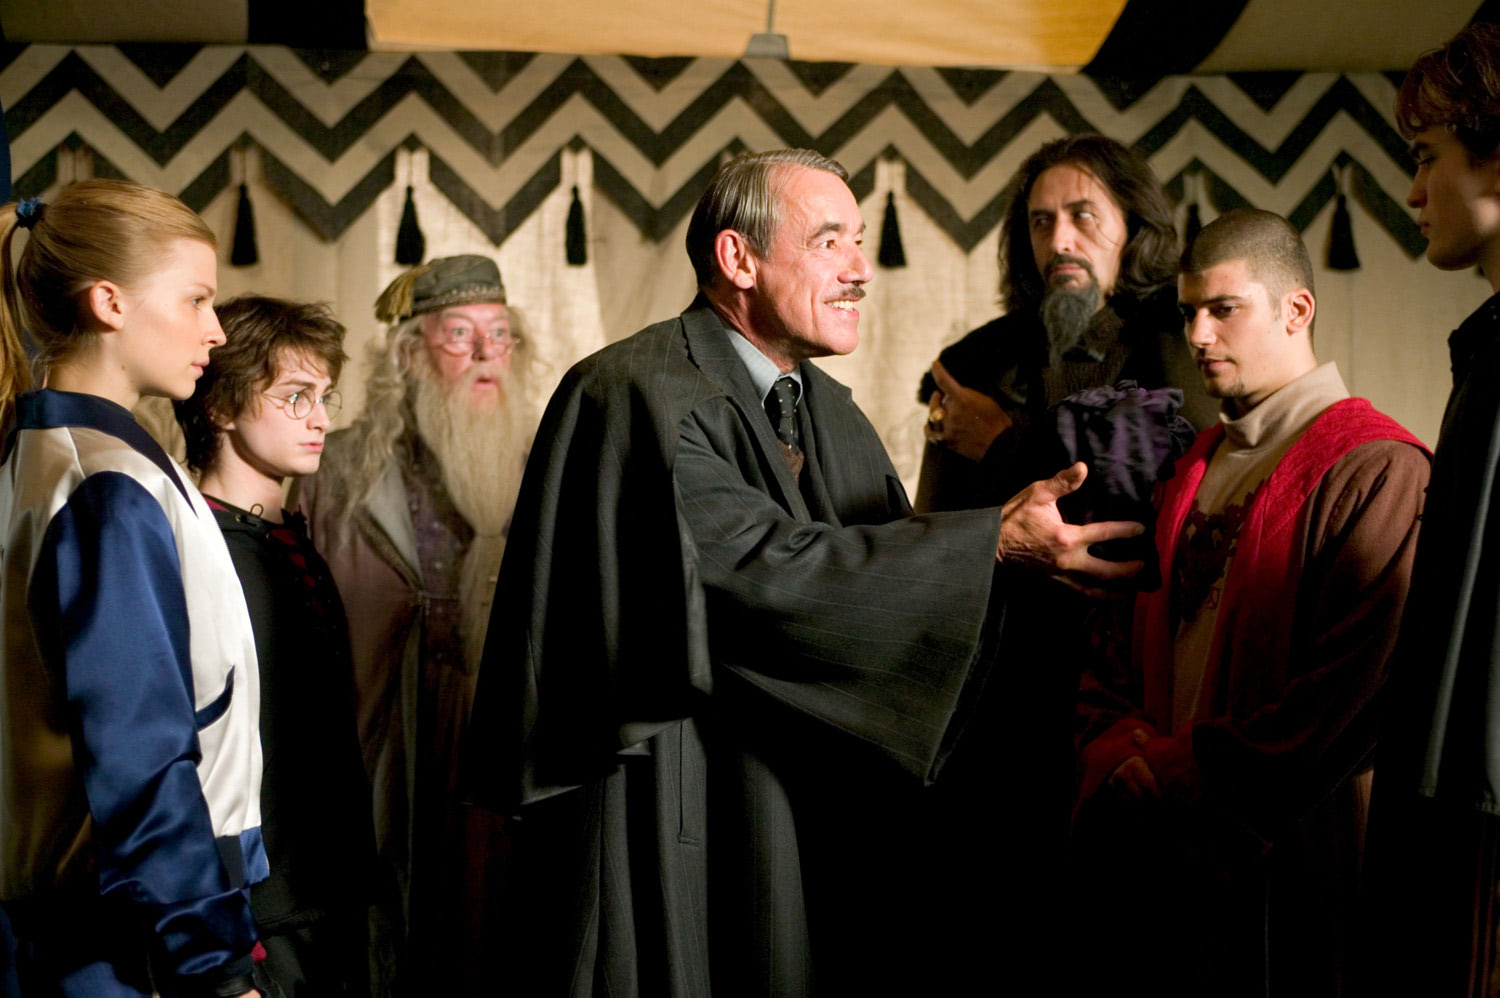 Barty Crouch addresses the Triwizard champions